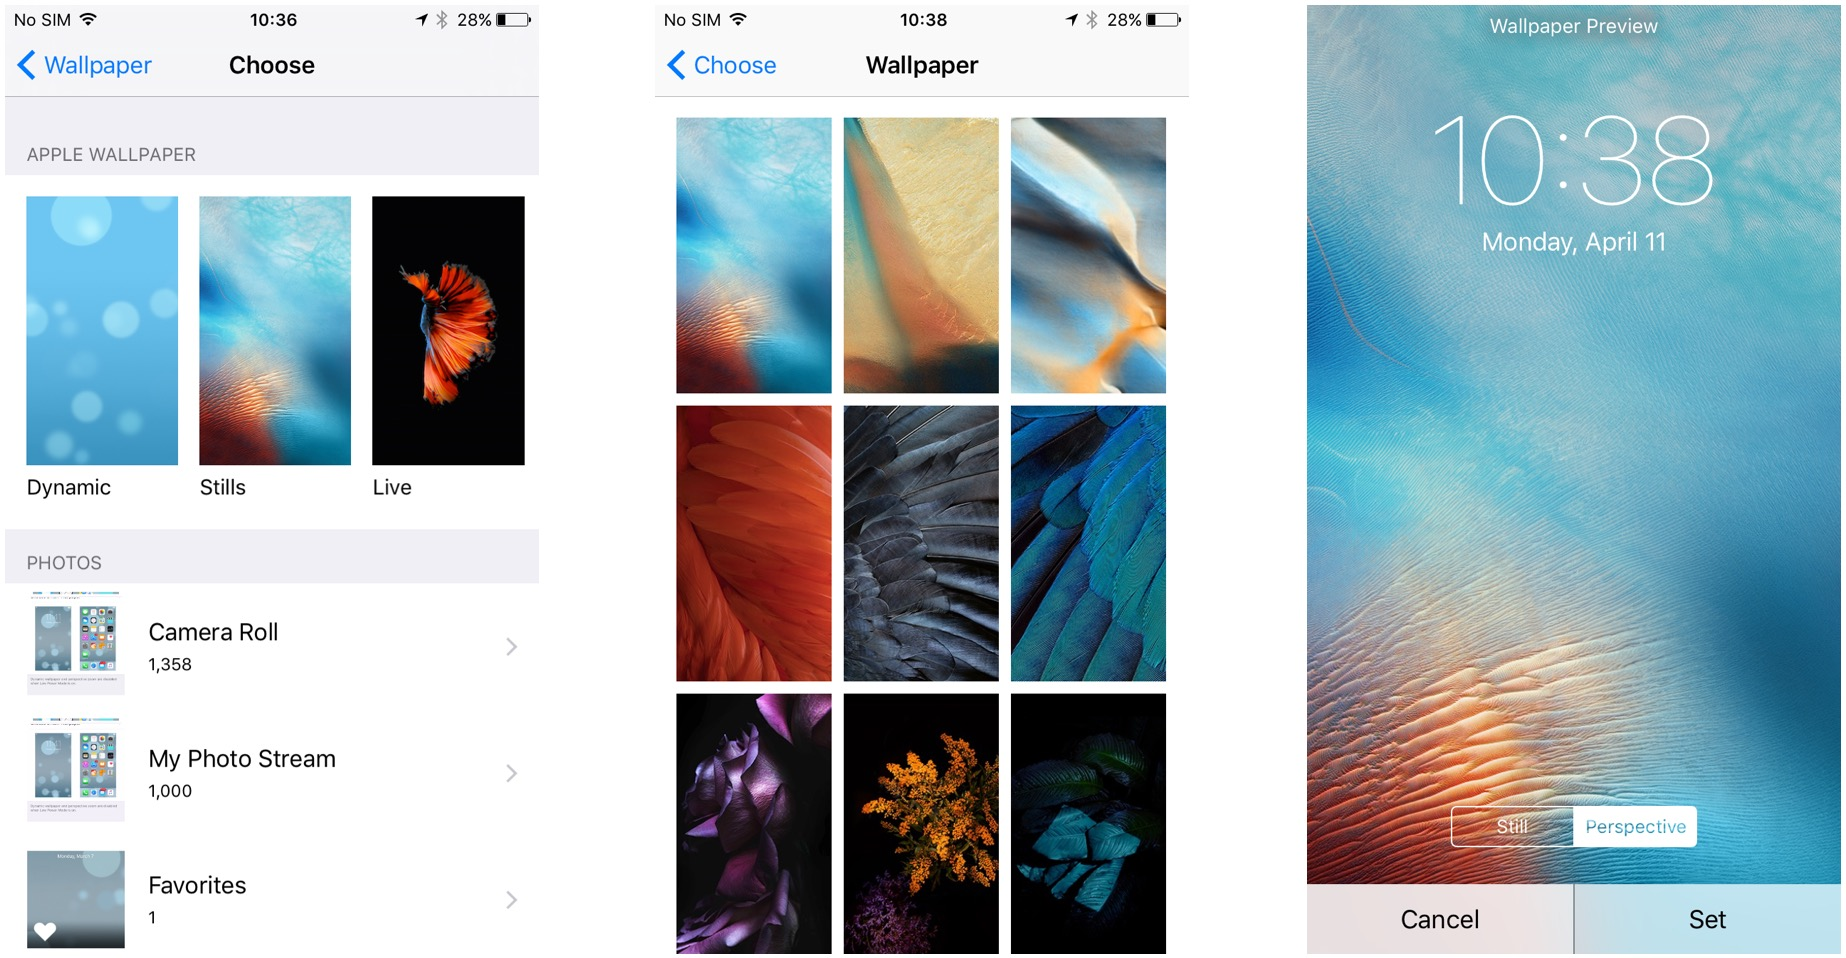 How to change your wallpaper on iPhone or iPad | iMore